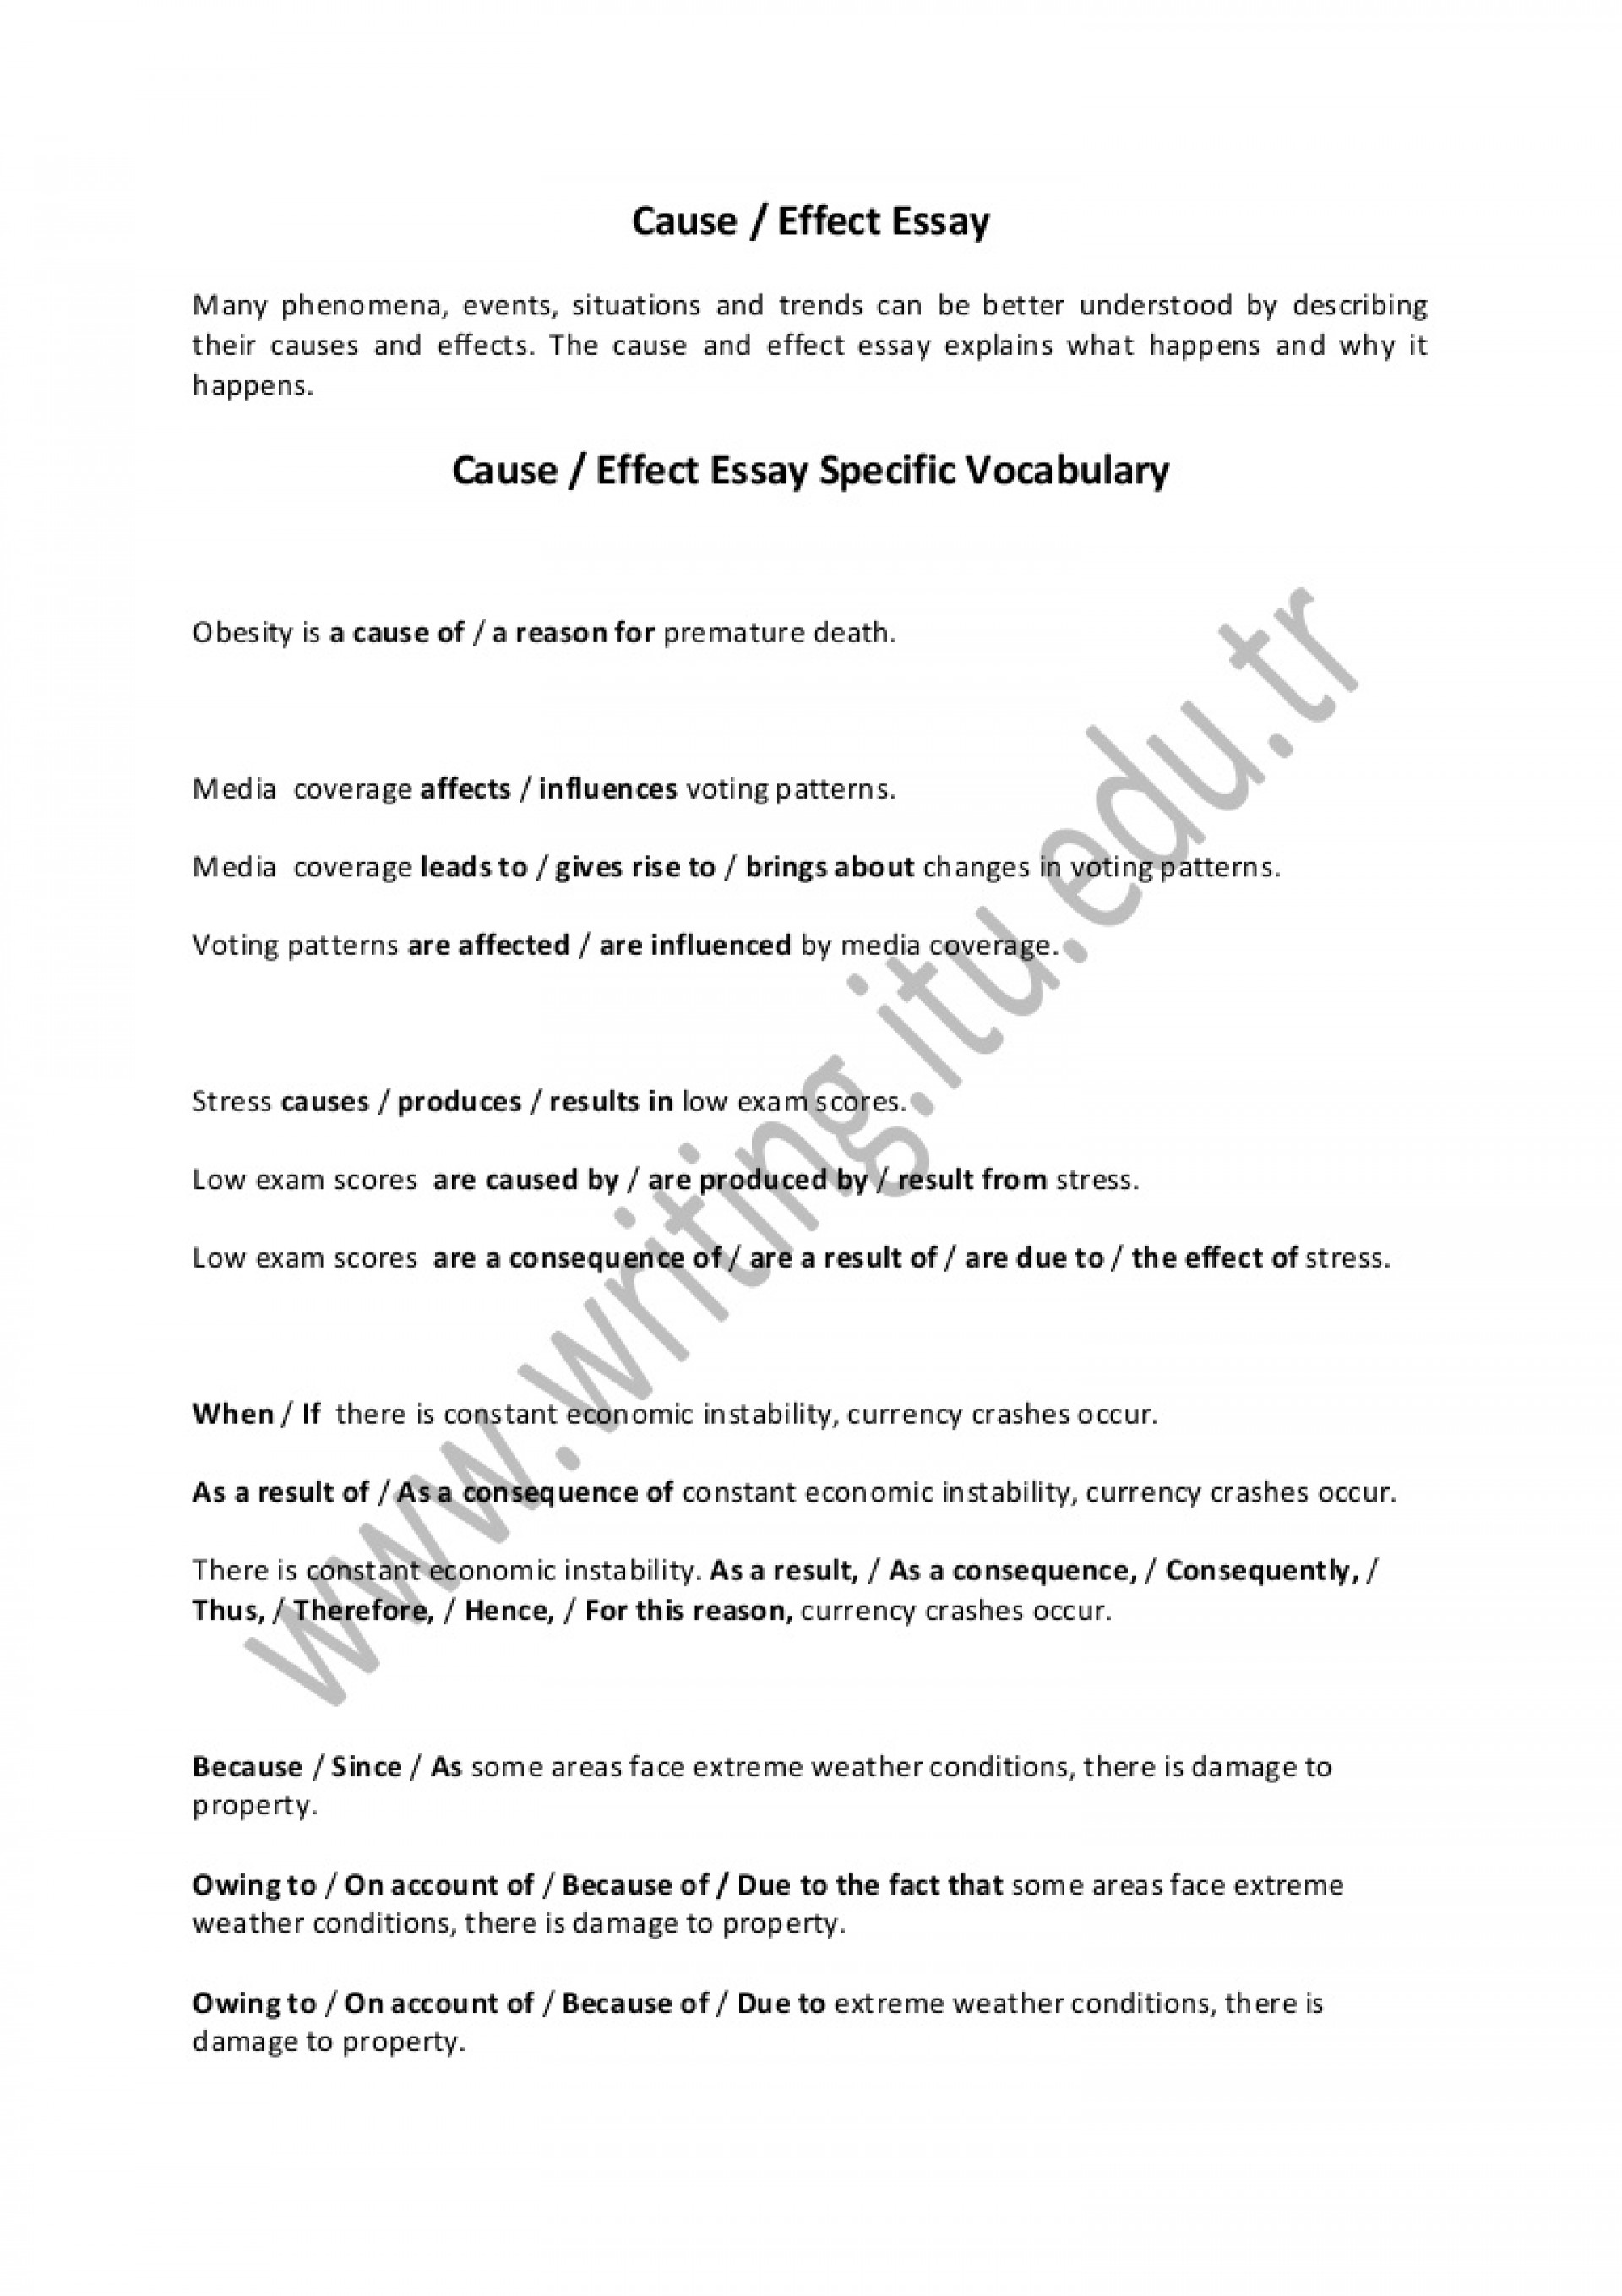 007 Causeandeffectessay Conversion Gate01 Thumbnail Essay Example How To Start Cause And Awful A Effect Examples Write Step By Powerpoint Pdf 1920